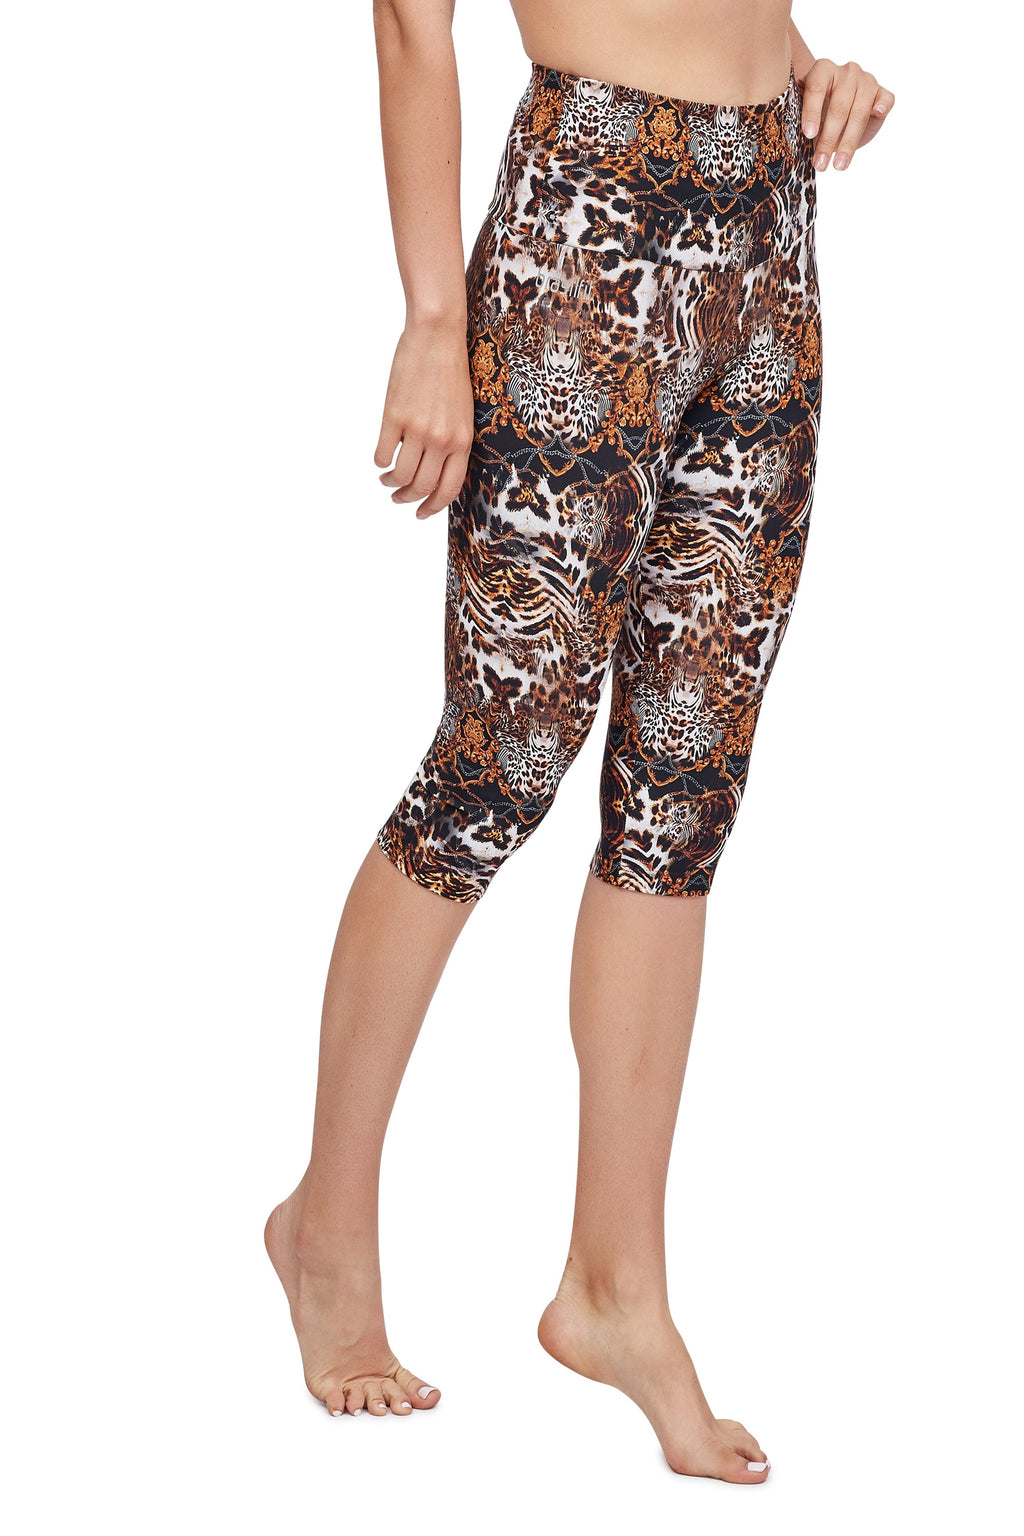 Animal Kingdom High Waisted  Under Knee